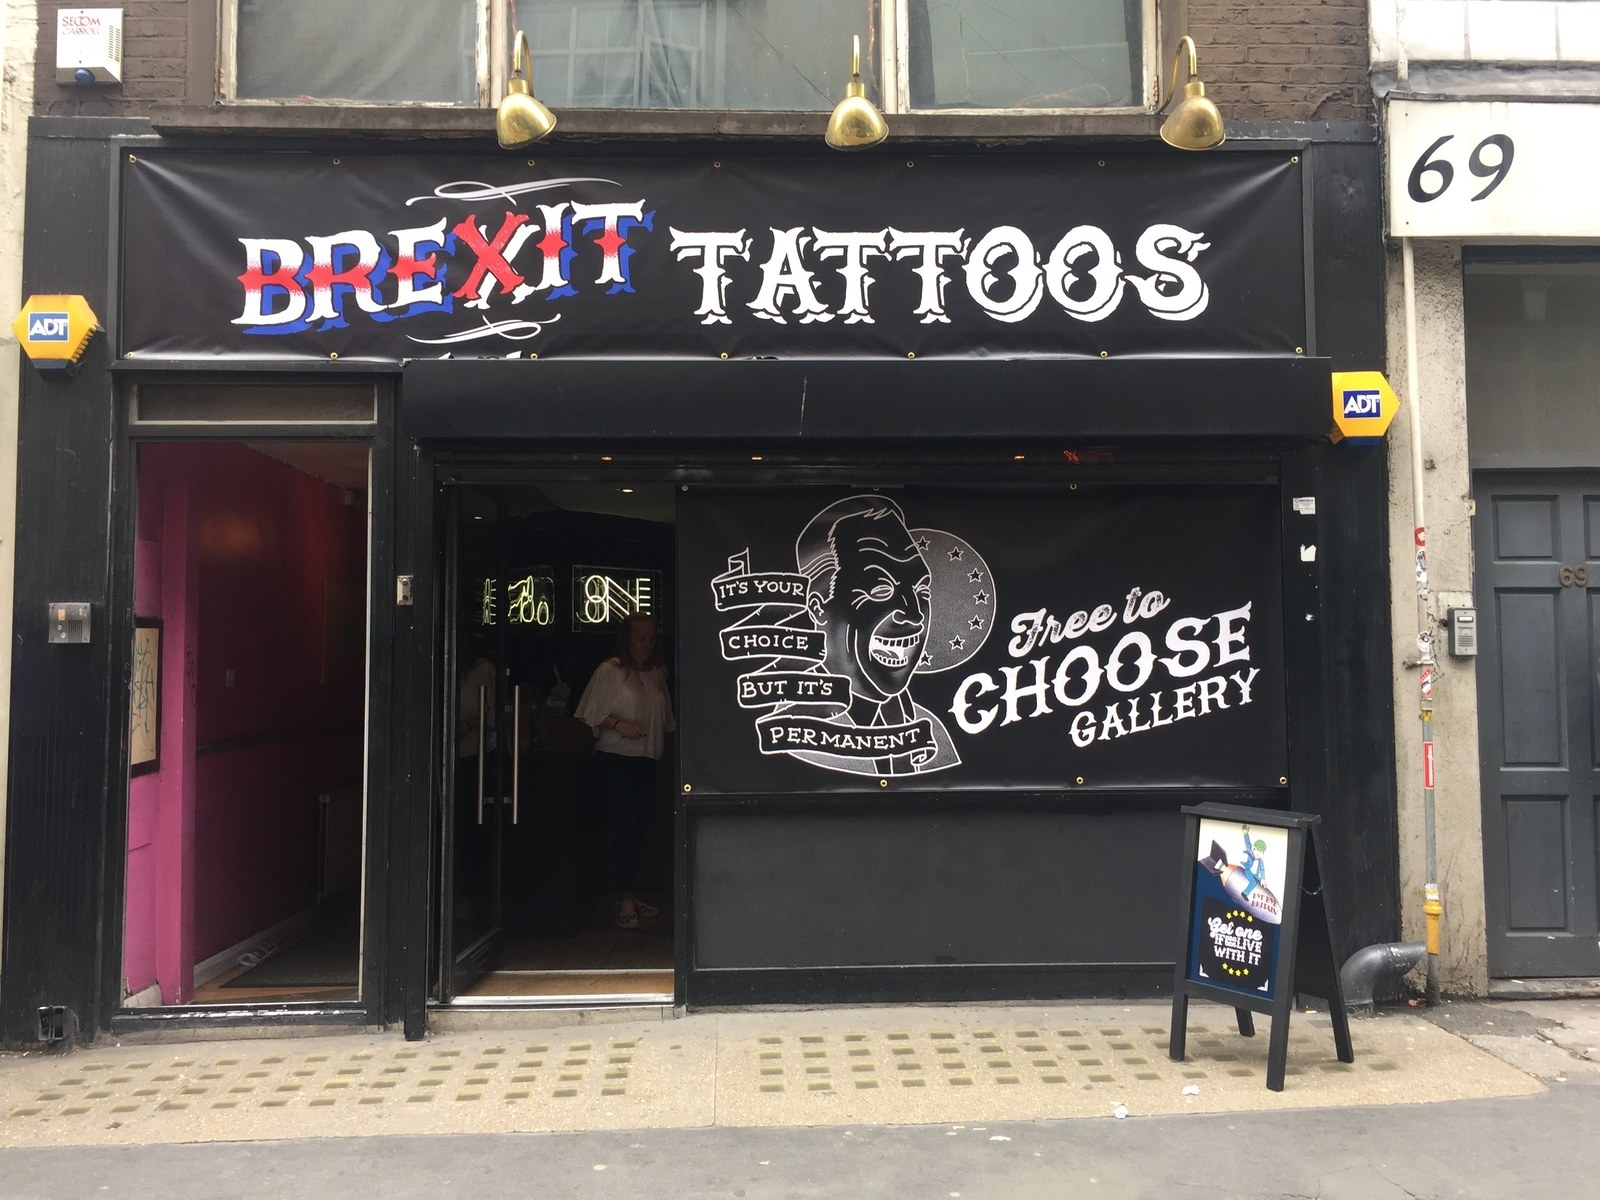 People Are Getting Tattoos To Mark The EU Referendum